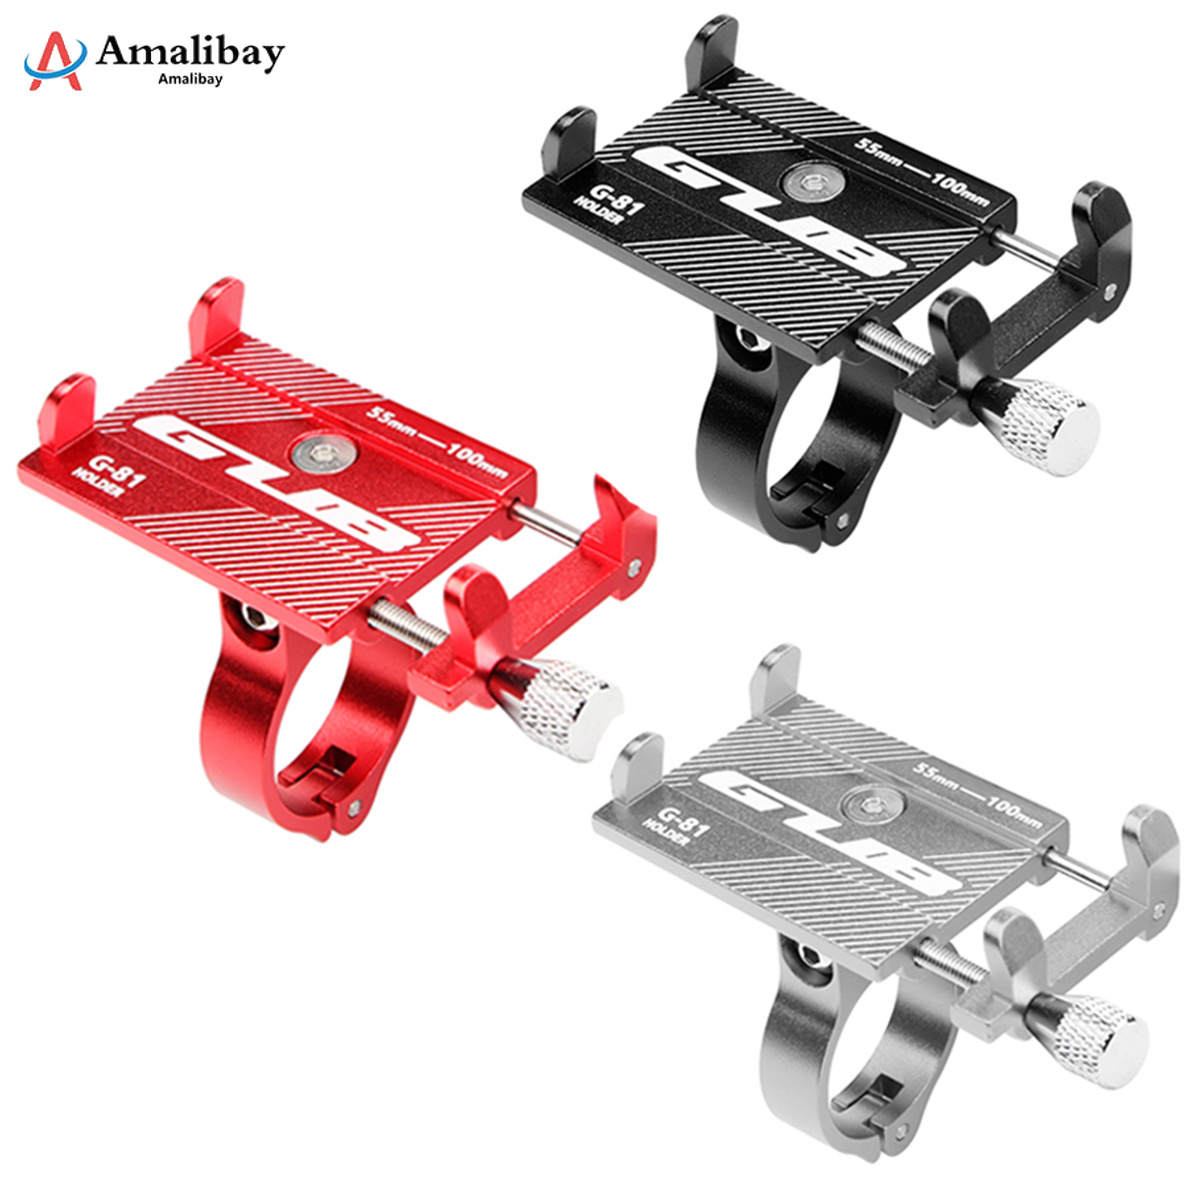 Adjustable Anti-Slip Mobile Phone Stand Holder for <font><b>Xiaomi</b></font> <font><b>M365</b></font> <font><b>Pro</b></font> <font><b>Electric</b></font> <font><b>Scooter</b></font> Qicycle EF1 Handlebar Mount Bracket Rack image